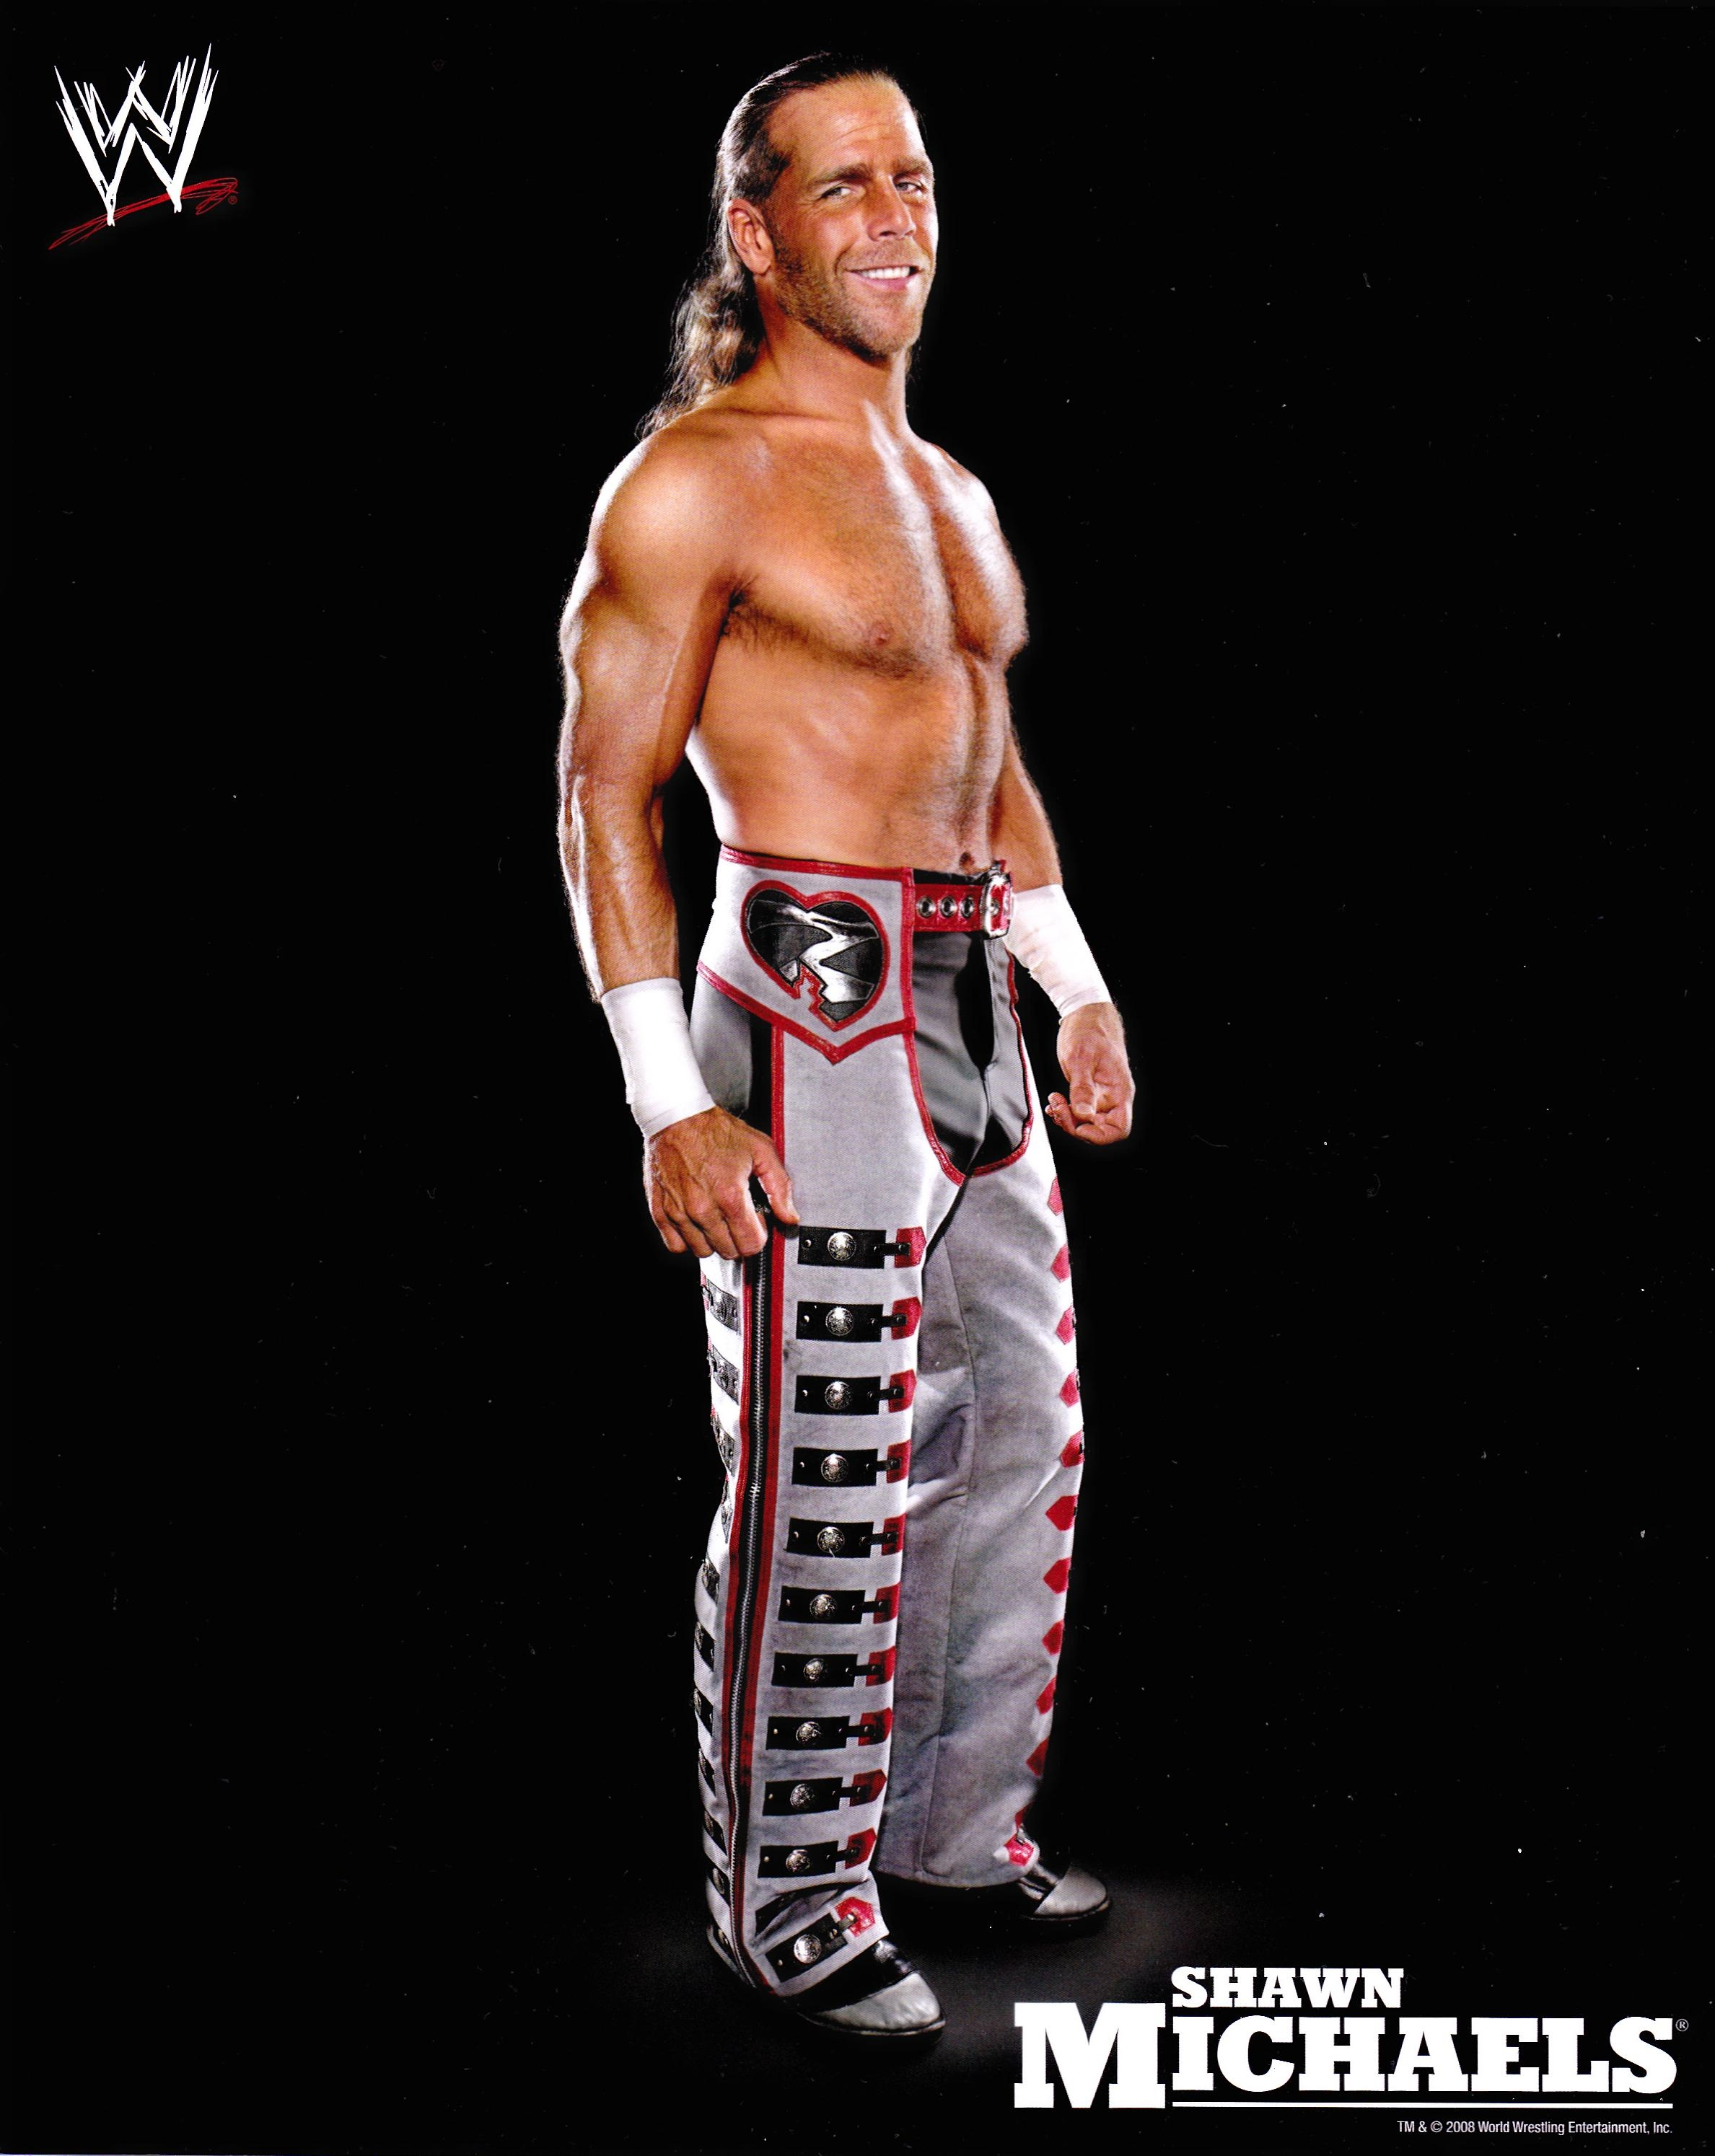 shawn michaels desktop background wallpaper